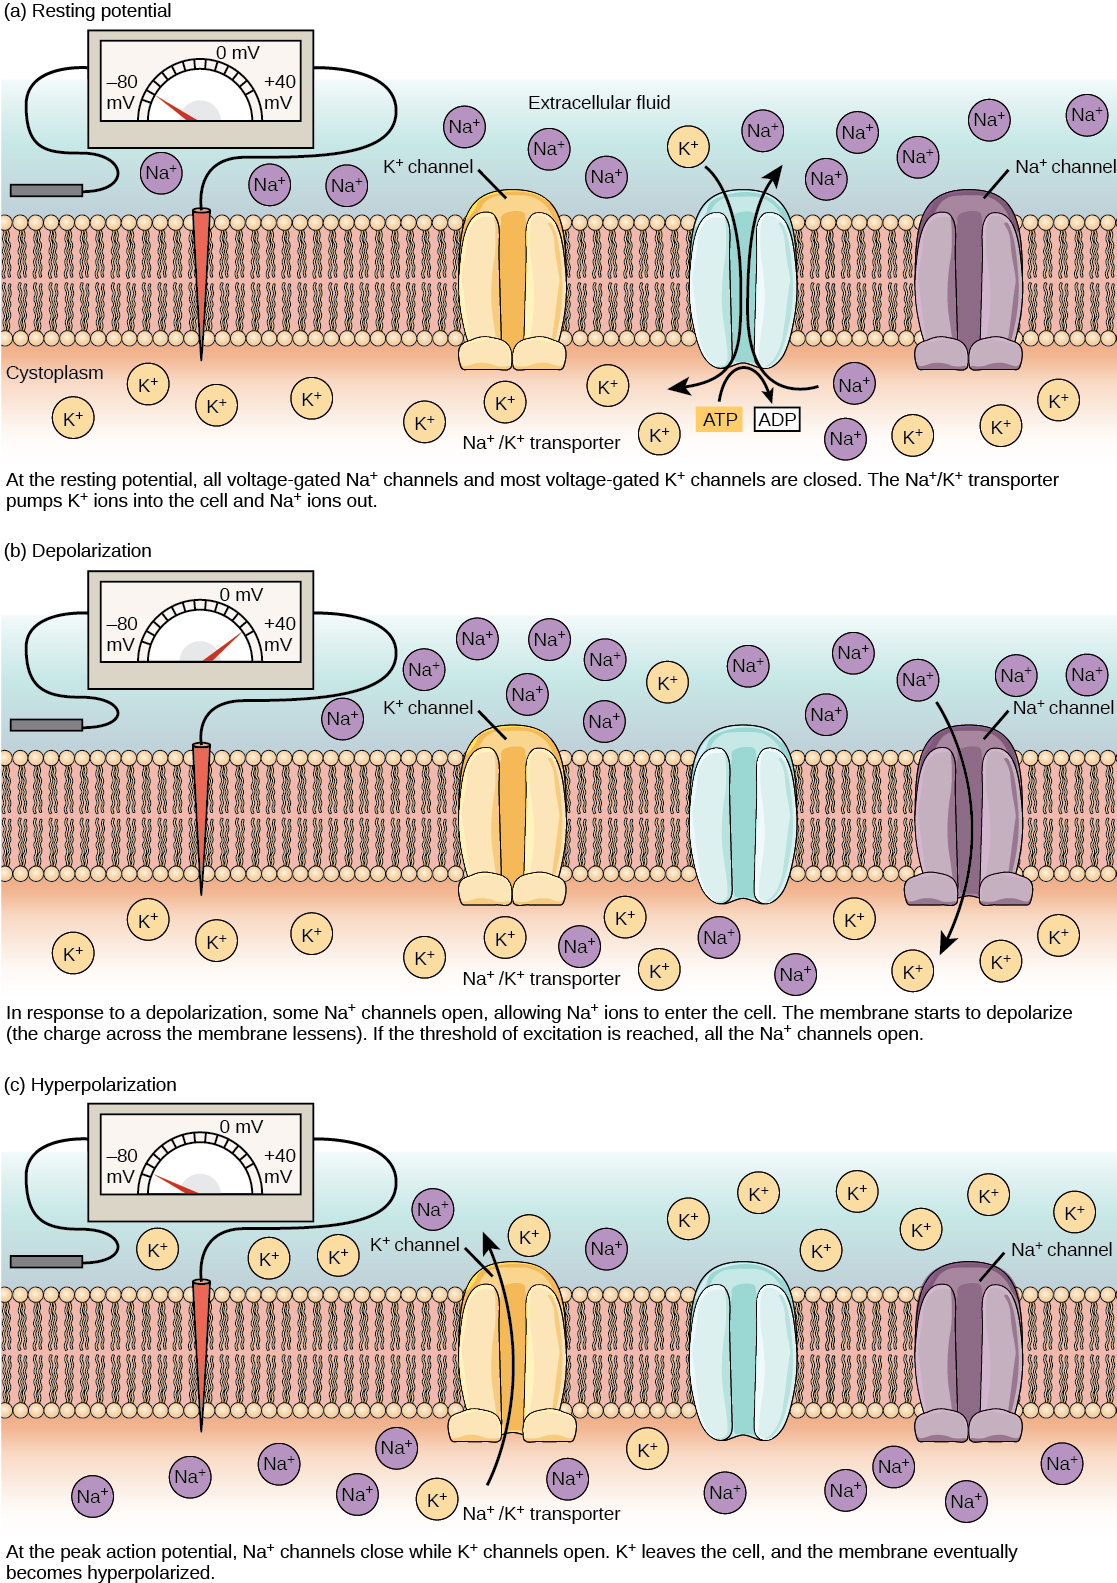 The resting membrane potential of minus seventy volts is maintained by a sodium/potassium transporter that transports sodium ions out of the cell and potassium ions in. Voltage gated sodium and potassium channels are closed. In response to a nerve impulse, some sodium channels open, allowing sodium ions to enter the cell. The membrane starts to depolarize; in other words, the charge across the membrane lessens. If the membrane potential increases to the threshold of excitation, all the sodium channels open. At the peak action potential, potassium channels open and potassium ions leave the cell. The membrane eventually becomes hyperpolarized.